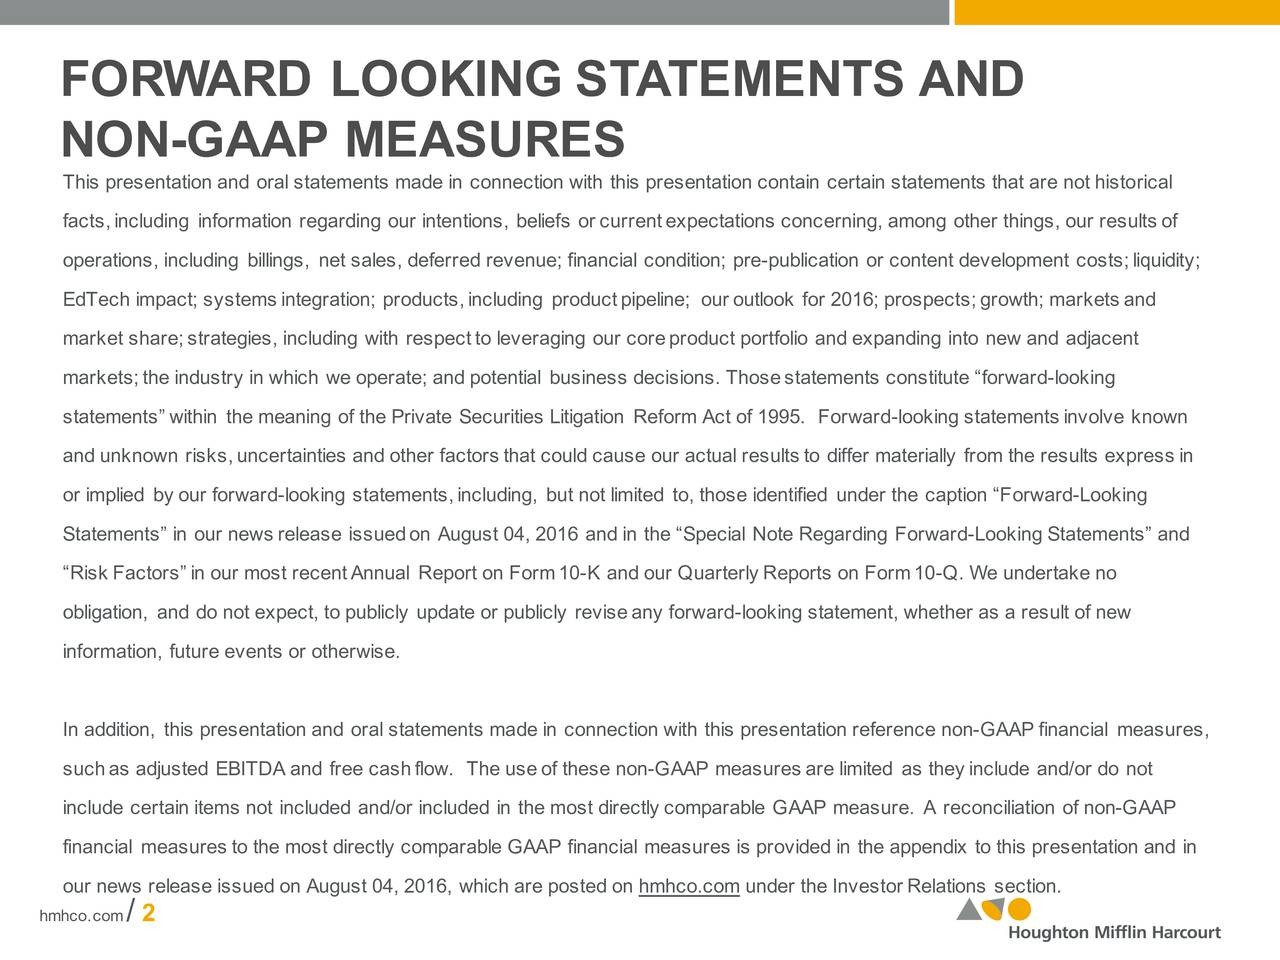 NON-GAAP MEASURES This presentation and oralstatements made in connection with this presentation contain certain statements tharical not histo facts,including information regarding our intentions, beliefs or currentexpectations concerning, among otheeults of, our rs operations, including billings, net sales, deferredrevenue; financial condition; pre-publication or content development costs;liquidity; EdTechimpact; systems integration;roducts,including productpipeline; our outlook for 2016; p;growth; markets and market share;strategies,including with respeleveraging our core product portfolio and expanding into new and adjacent markets; the industryin which weoperate; and potential business decisions. Thosestatements constitute forwar-dlooking statementswithin themeaning ofthePrivate Securities Litigation ReformActof1995. For-looking statements involve kwon and unknown risks,uncertainties and other factors that could cause our actual results to differ materiallysxpressin resulte or implied by our forward-looking statements, including, but not limited to, those identified under th-roaringn Fo Statements in our news release issuednugust 04, 2016and in the Special Note Regarding Forw-Looking Statements and RiskFactorsin our most recentAnnual Report on Form1-K and our Quarterly Reports on For-0 . Weundertakeno obligation, and do not expect, to publicly update or publicly revisealooking statement, whether as a result of new information, future events or otherwi.se In addition, this presentation and oral statements made in connection with this presentation-GAAPfinancial measur es, suchas adjusted EBITDA andfree cashflow. The useof these non-GAAP measuresarelimited as theyincludeand/or do not include certain items not included and/or included in the most directly comparable GAAP measure. A reconcilGoAfPon financial measures to the most directly comparable GAAP financial measures is provided in the appendix to thisad inentation n our news release issued onAugust 04, 2016,which are posted on hmhco.comunder the Investor Relations section. hmhco.com/2